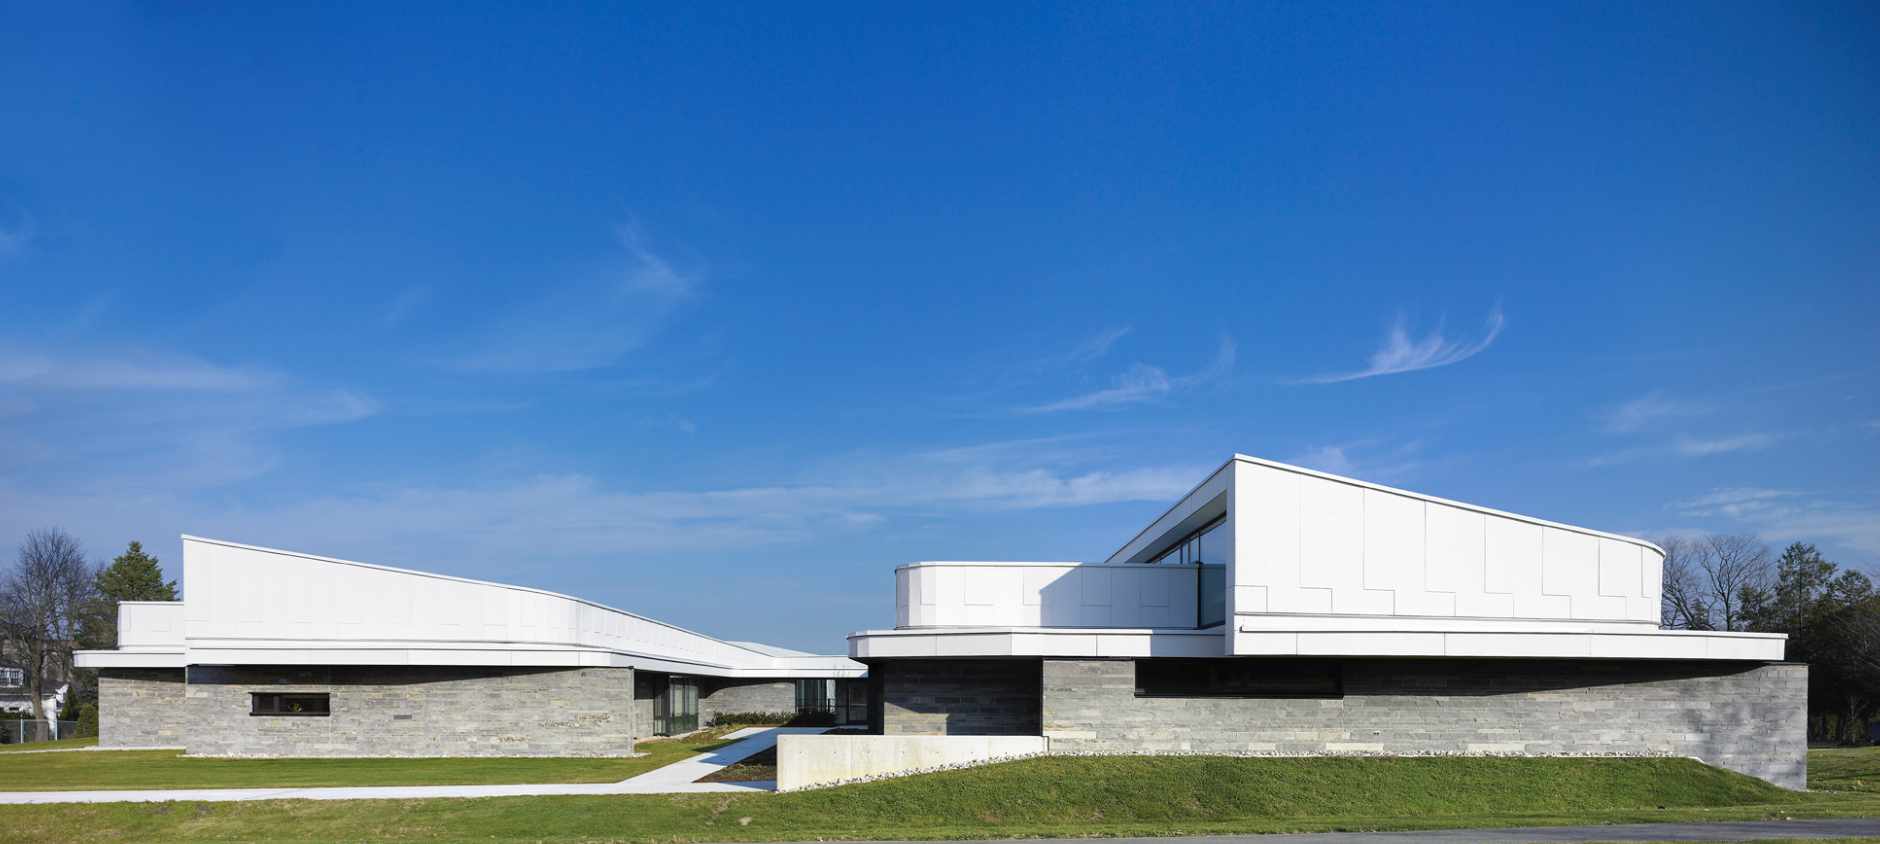 I didn't take an exterior shot of the entire building, this photo is by Teeple Architects.